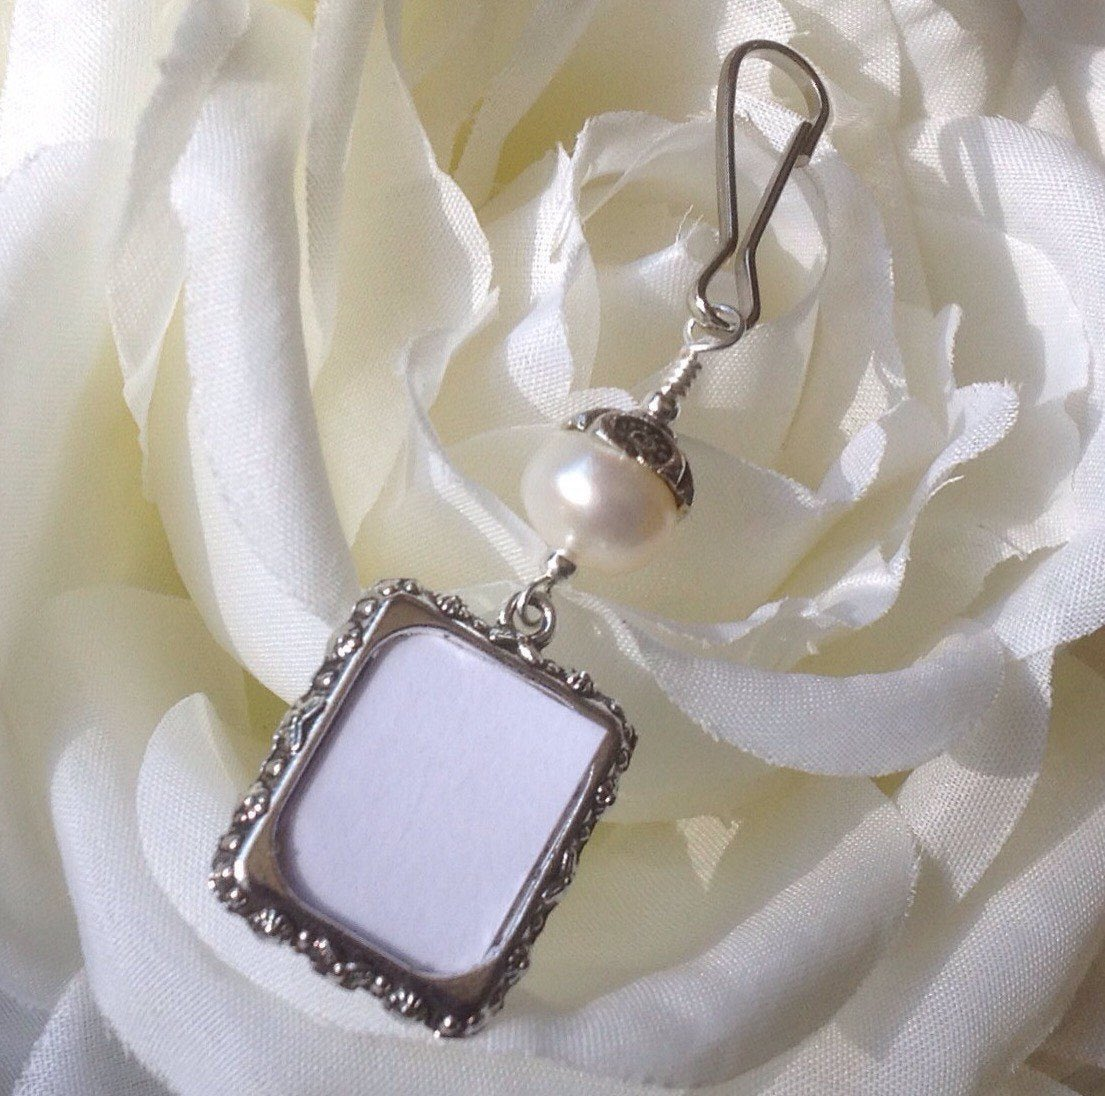 Excited to share this item from my #etsy shop: Wedding bouquet photo charm. Bridal bouquet charm with small picture frame and pearl. Bridal shower gift for a bride. Memorial photo charm. https://etsy.me/3c9qecy   #epiconetsy #etsymntt #bestofetsy #NJ #brides #like2 #shopetsypic.twitter.com/yAypqoLaX7